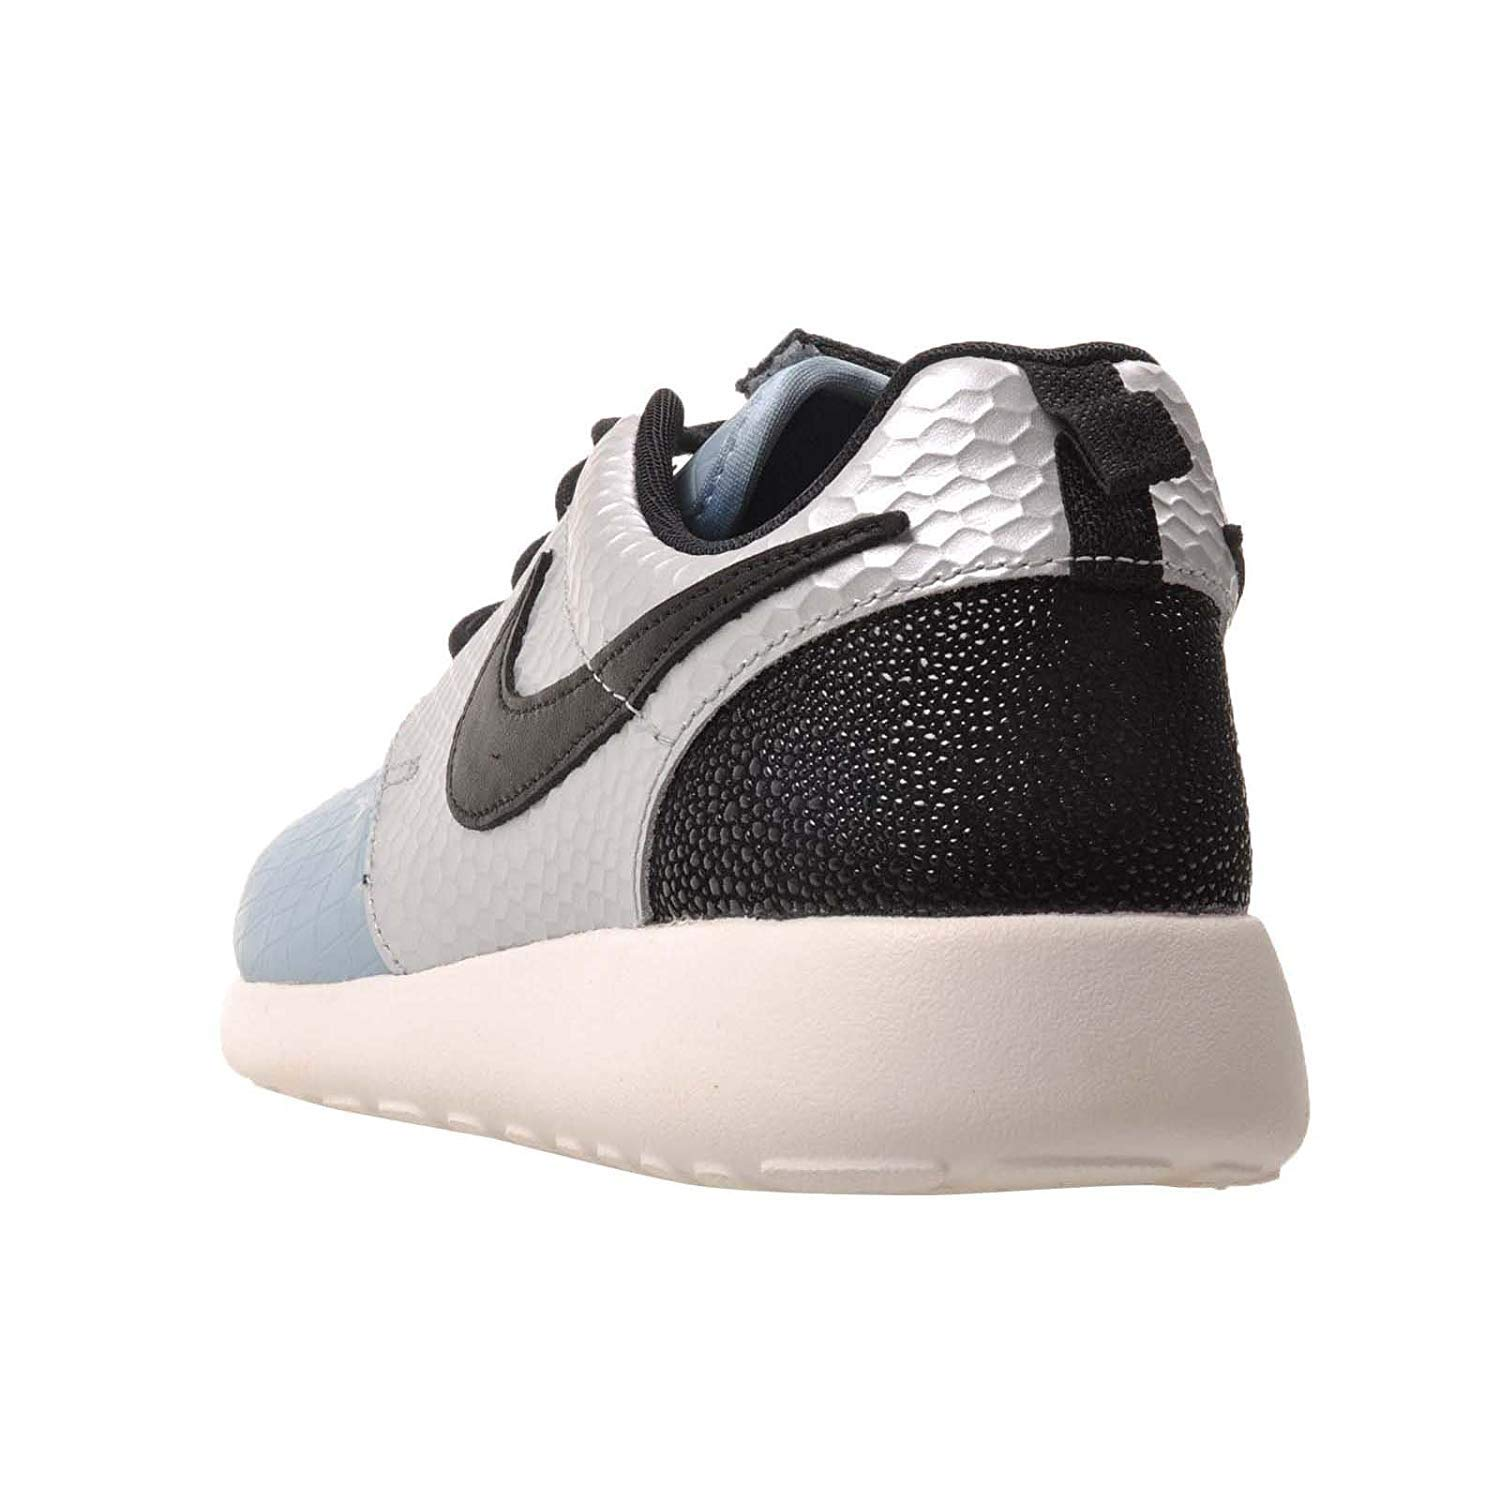 5928ff10b322 Nike Womens Roshe One LX Low Top Lace Up Running Sneaker